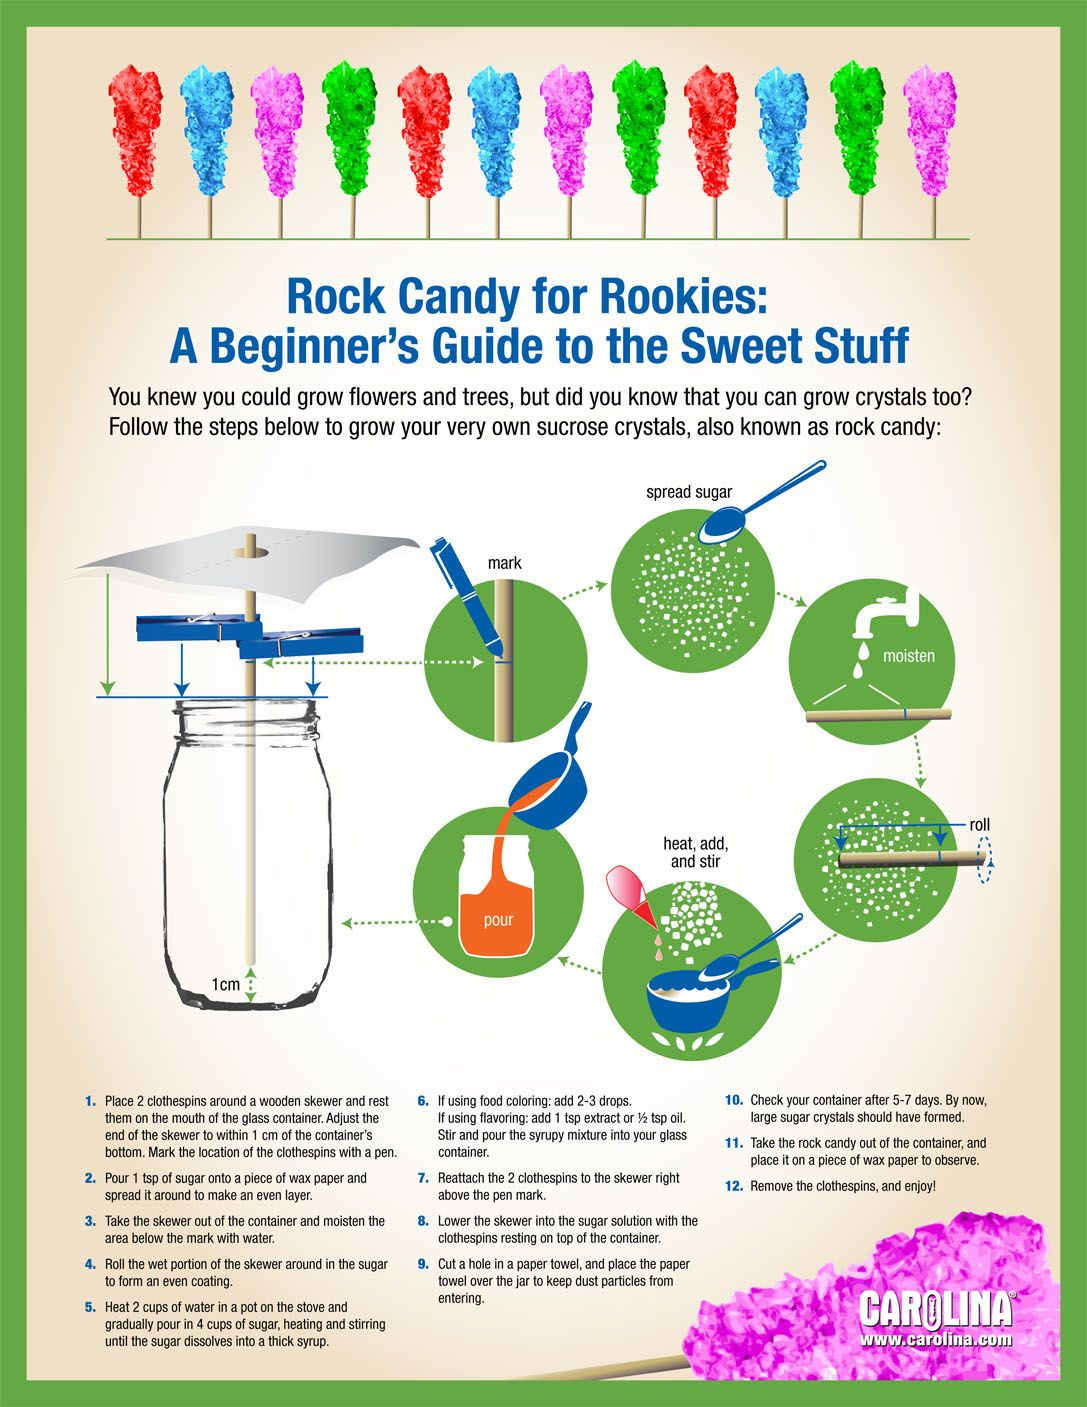 Infographic - Rock Candy for Rookies: A Beginner's Guide to the Sweet Stuff